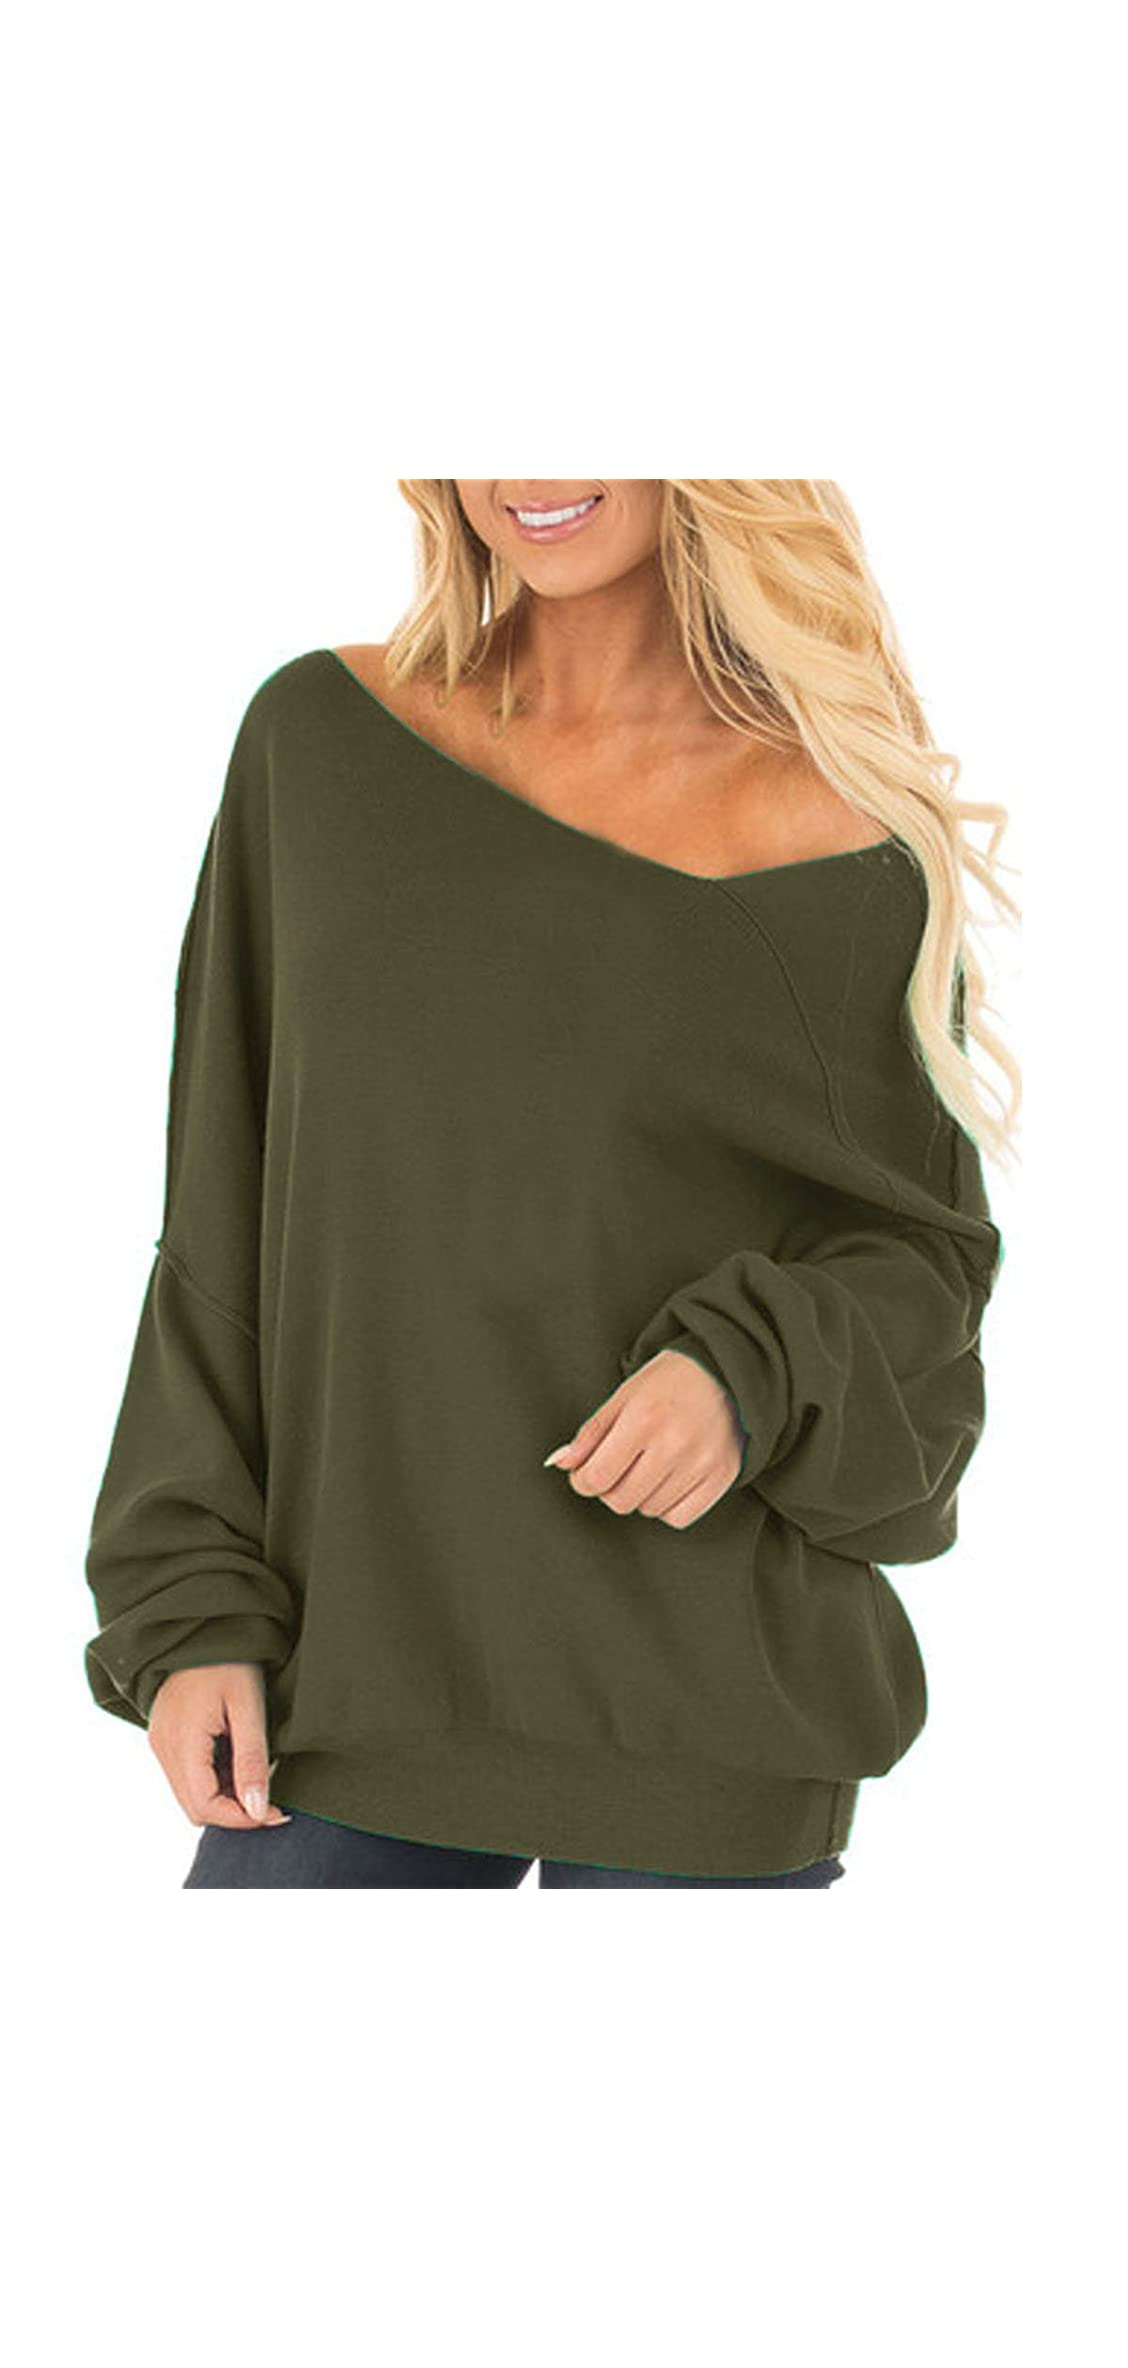 Womens Off The Shoulder Tops Baggy Shirt Long Sleeve Blouse